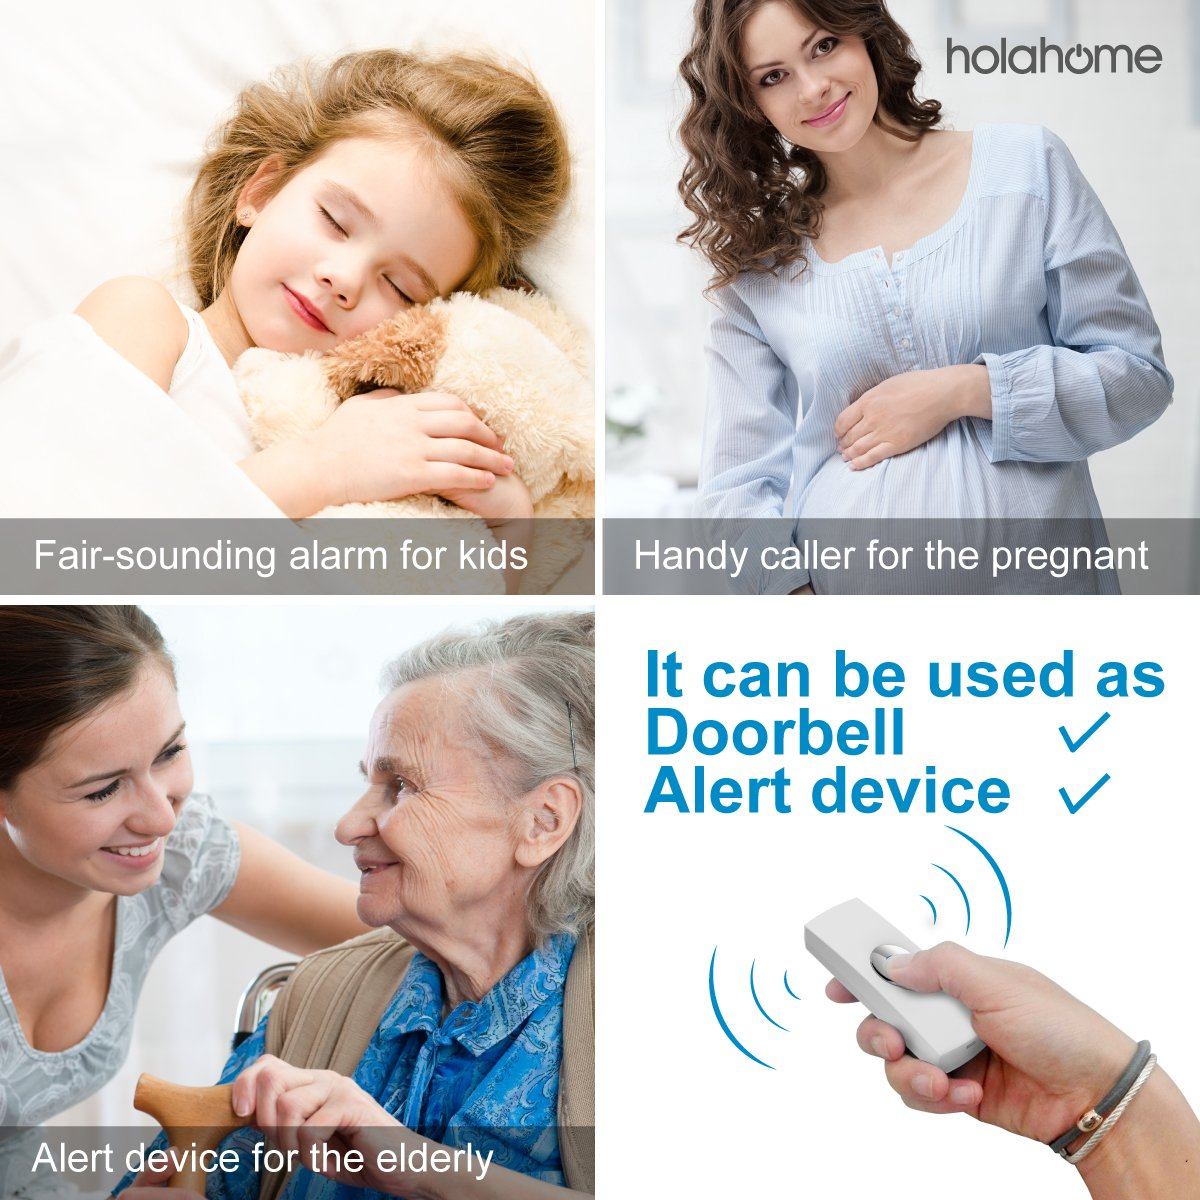 Holahome Wireless Doorbell - Waterproof Portable Door Bell Chime Kit Push Button with 2 Portable Receivers 32 Melodies Wireless Door Alarm Chime Long Range Battery Operated for Home Office White by holahome (Image #3)